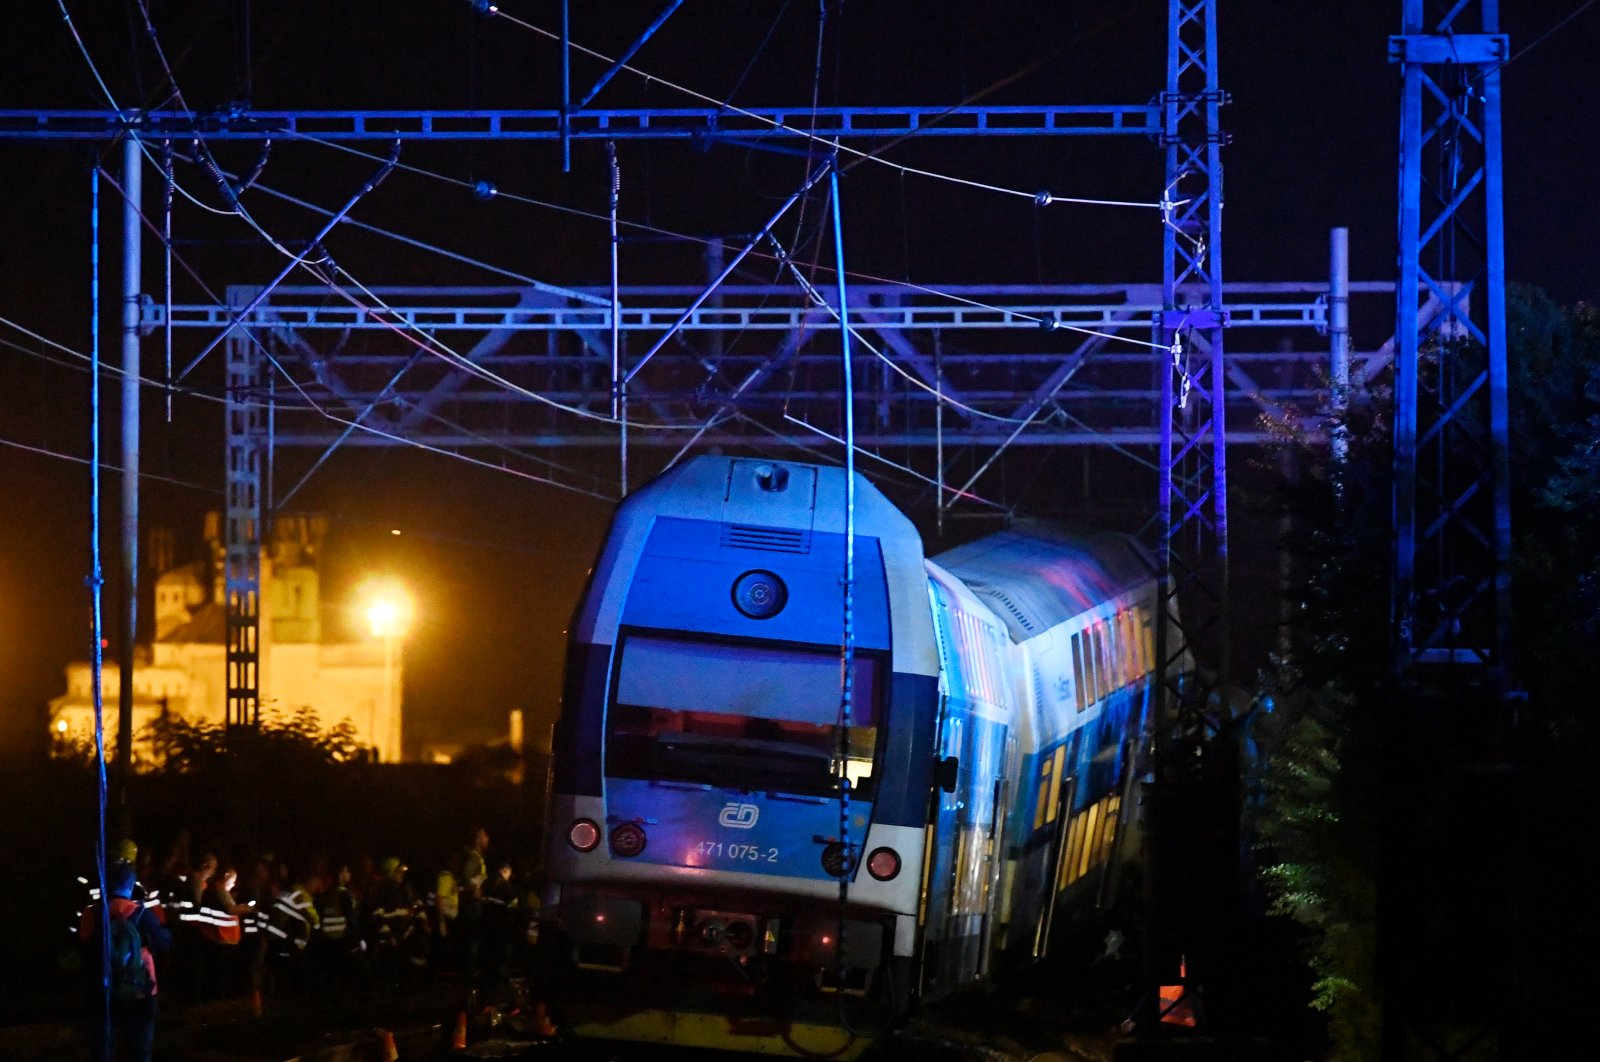 Rescuers work at the scene of a collision between passenger and freight trains in Cesky Brod, east of Prague, Czechia, July 14, 2020. (AP Photo)